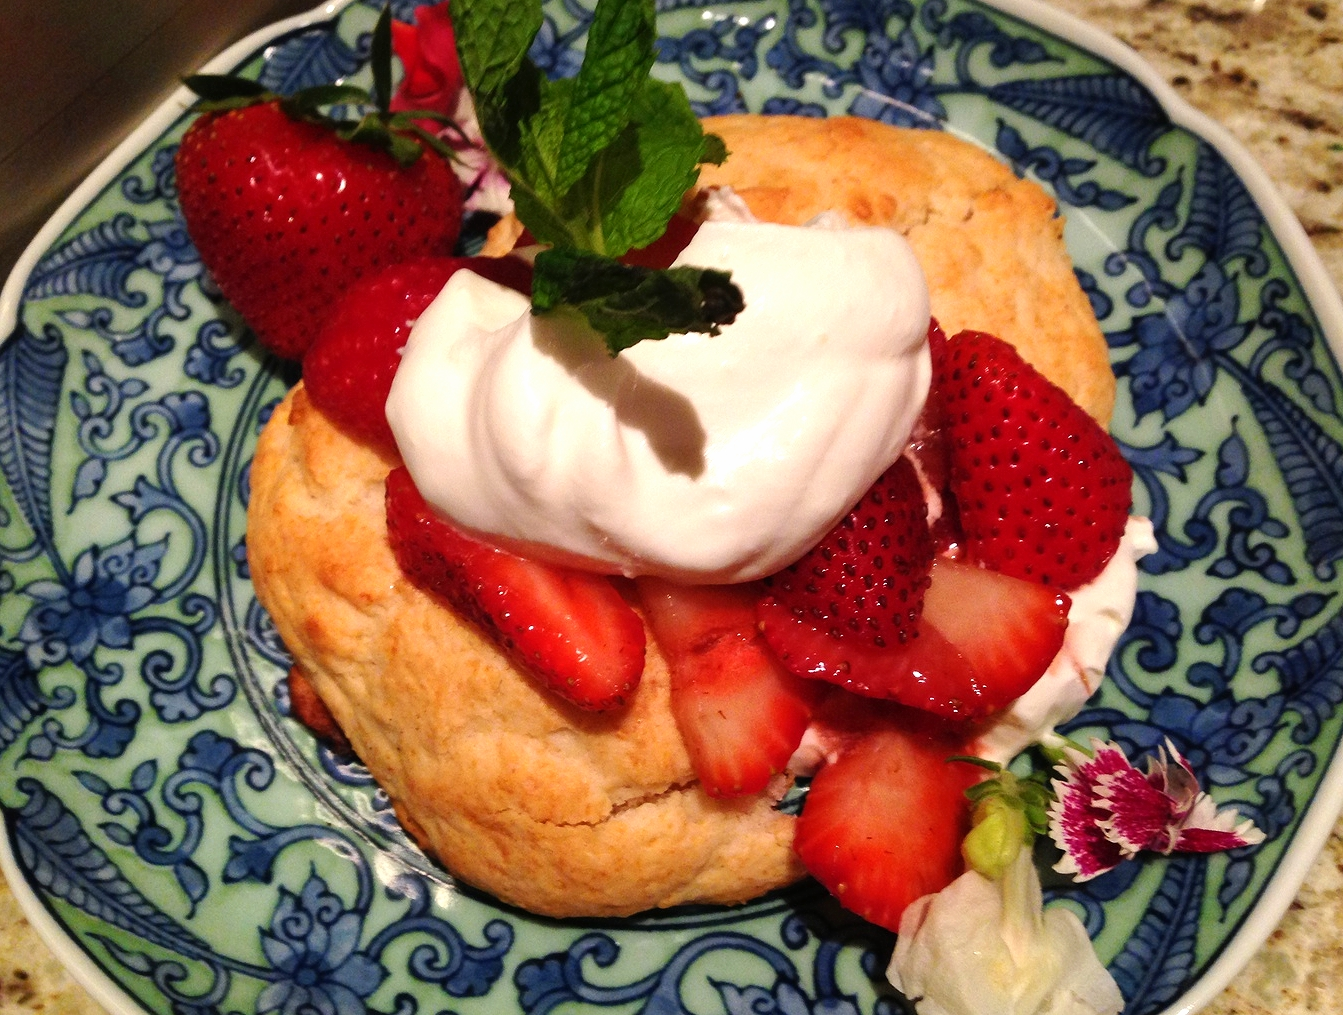 Strawberry shortcake with whipped cream and sliced strawberries